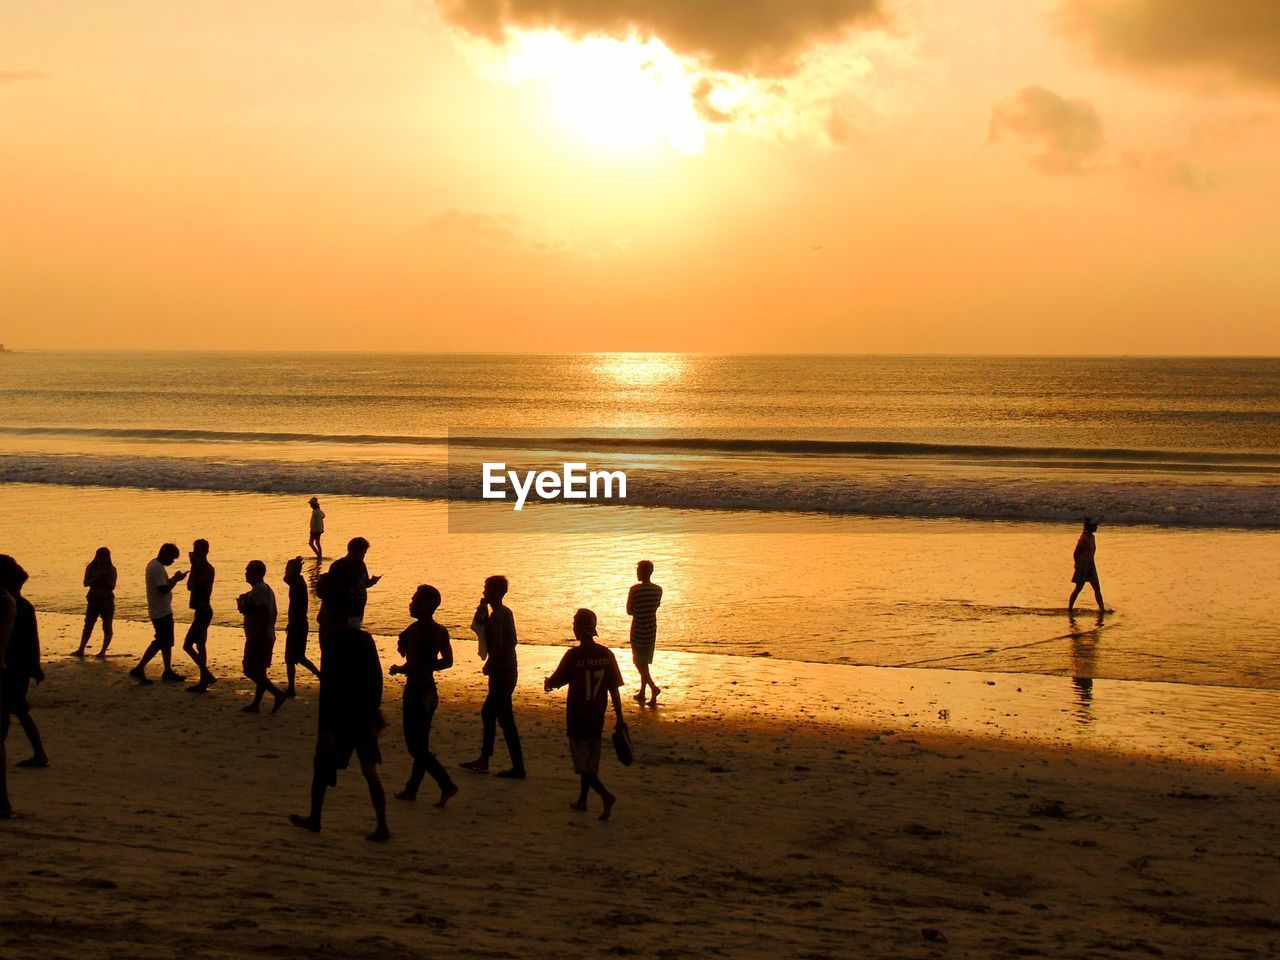 sky, sunset, sea, water, beach, land, horizon over water, group of people, horizon, scenics - nature, orange color, beauty in nature, real people, lifestyles, men, silhouette, leisure activity, nature, sun, outdoors